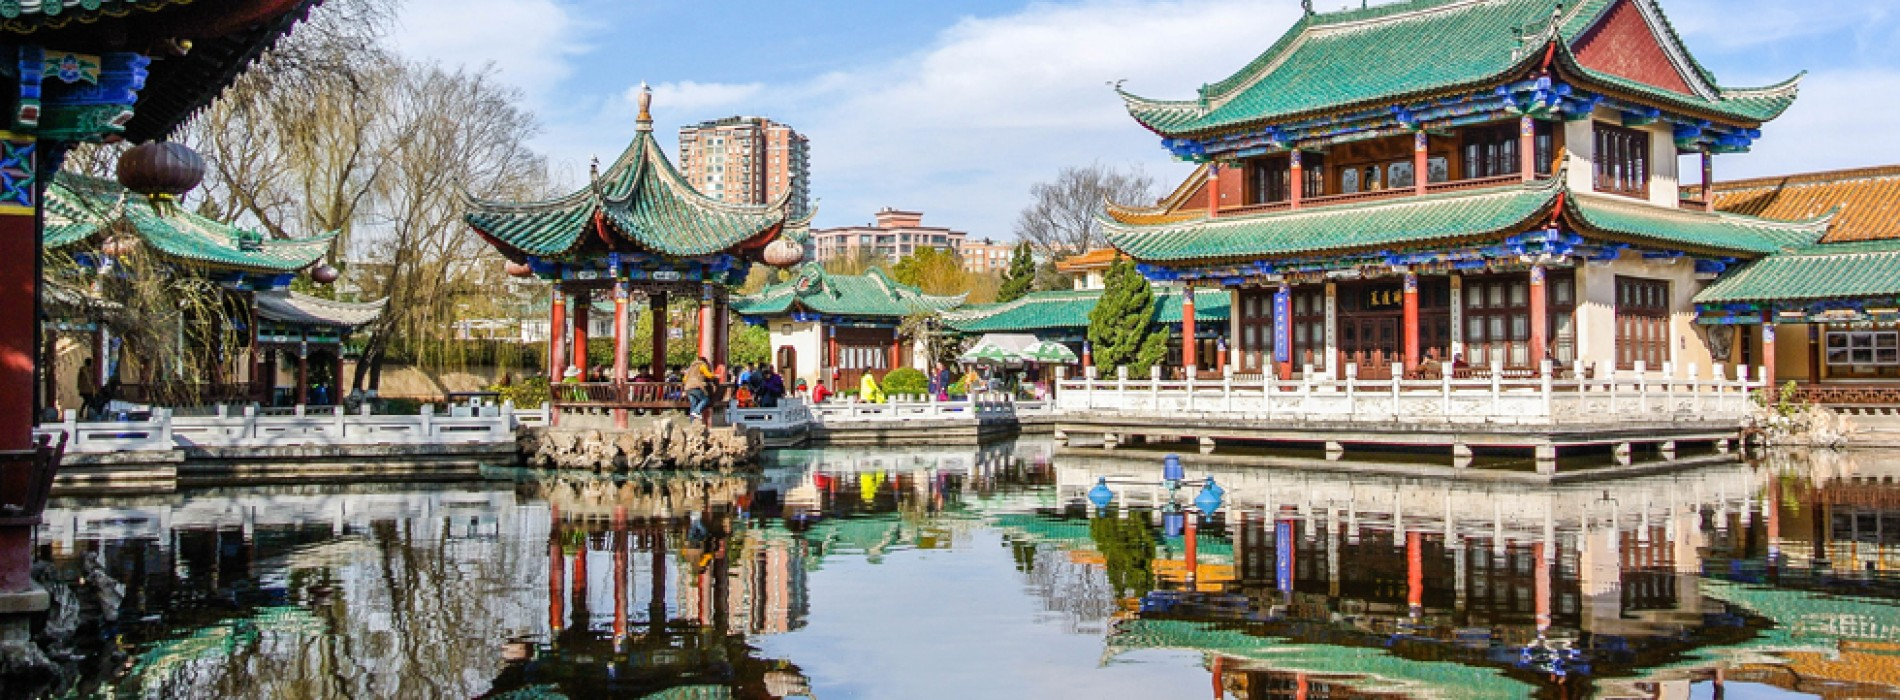 TAAI selects Kunming in China as destination for Convention with a vision of 'discovery'